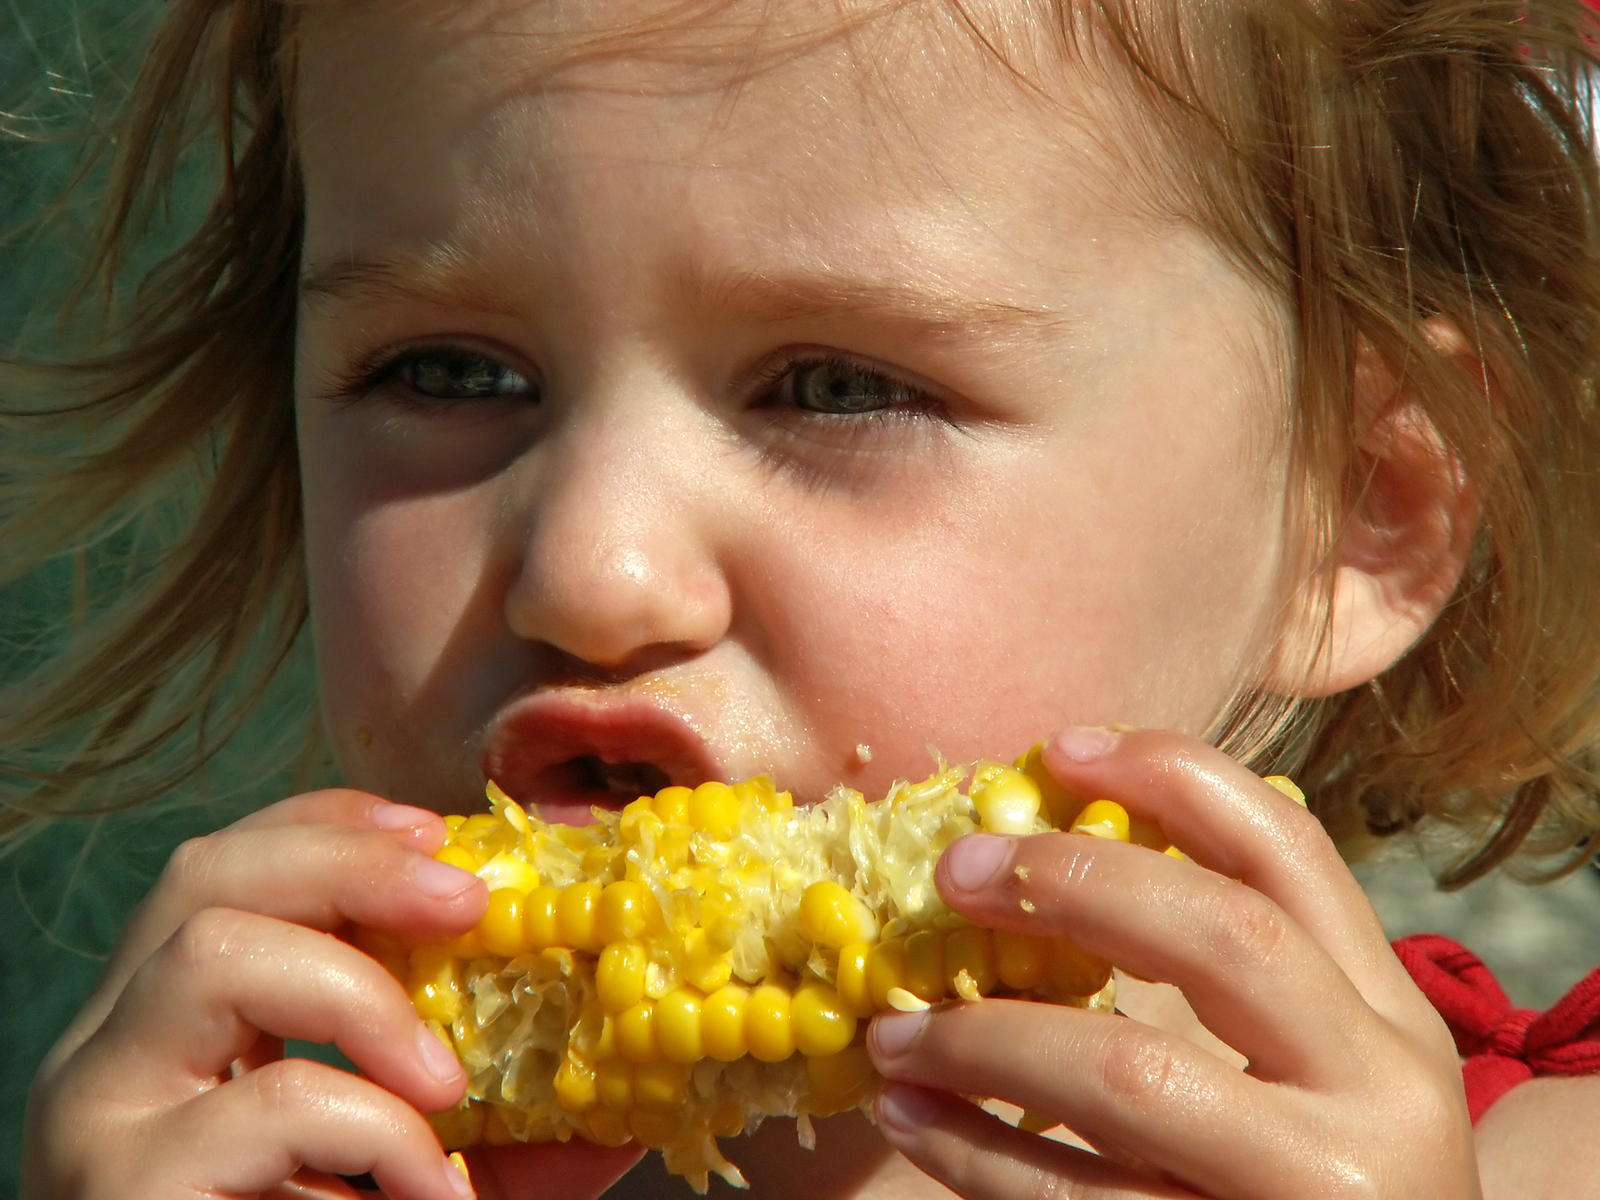 bigstock-girl-eating-corn-on-the-cob-766316